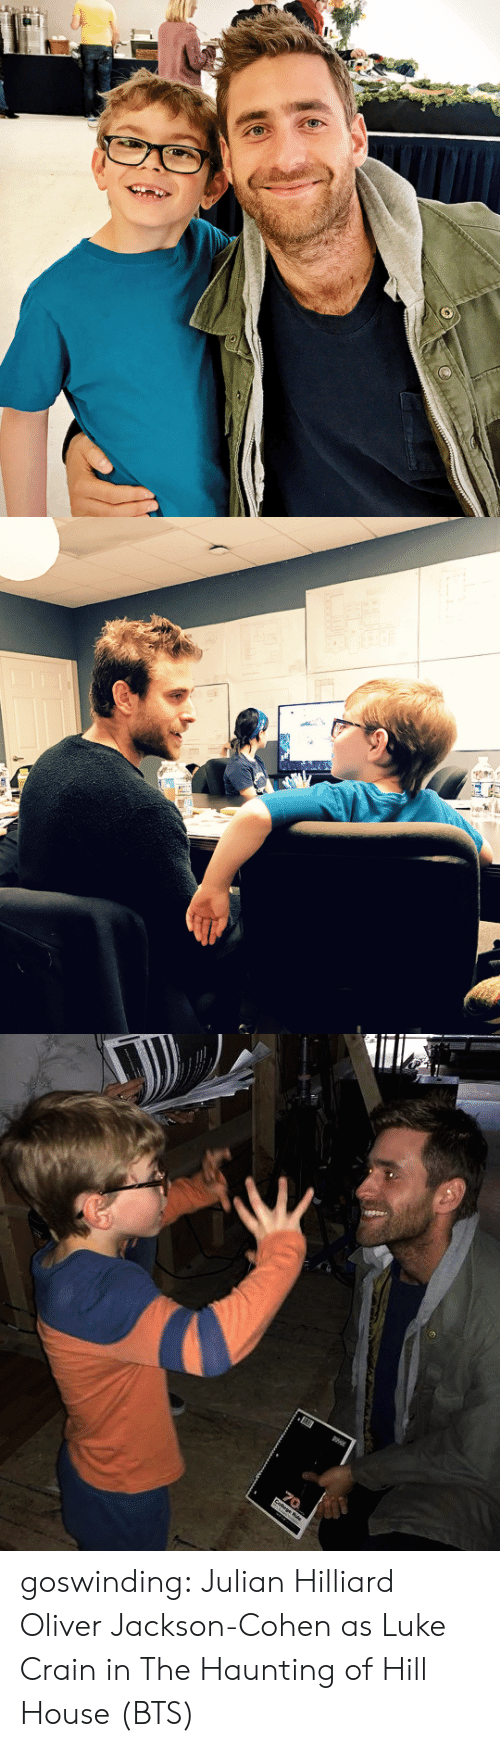 Tumblr, Blog, and House: goswinding:  Julian Hilliard  Oliver Jackson-Cohen  as Luke Crain in The Haunting of Hill House (BTS)